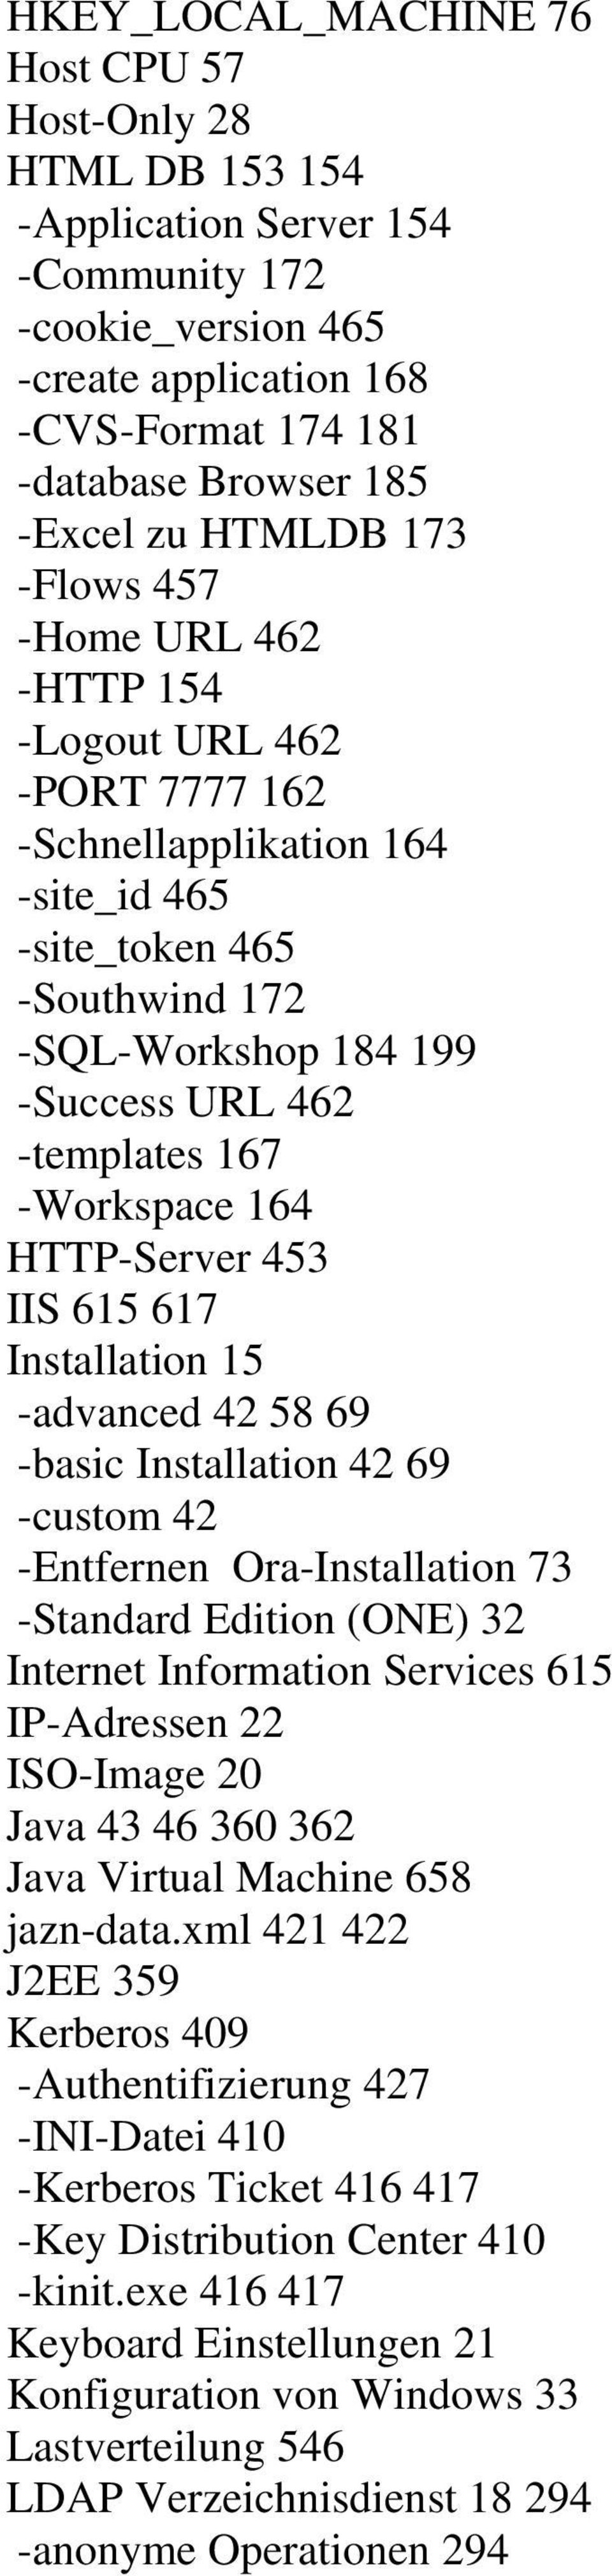 -Workspace 164 HTTP-Server 453 IIS 615 617 Installation 15 -advanced 42 58 69 -basic Installation 42 69 -custom 42 -Entfernen Ora-Installation 73 -Standard Edition (ONE) 32 Internet Information